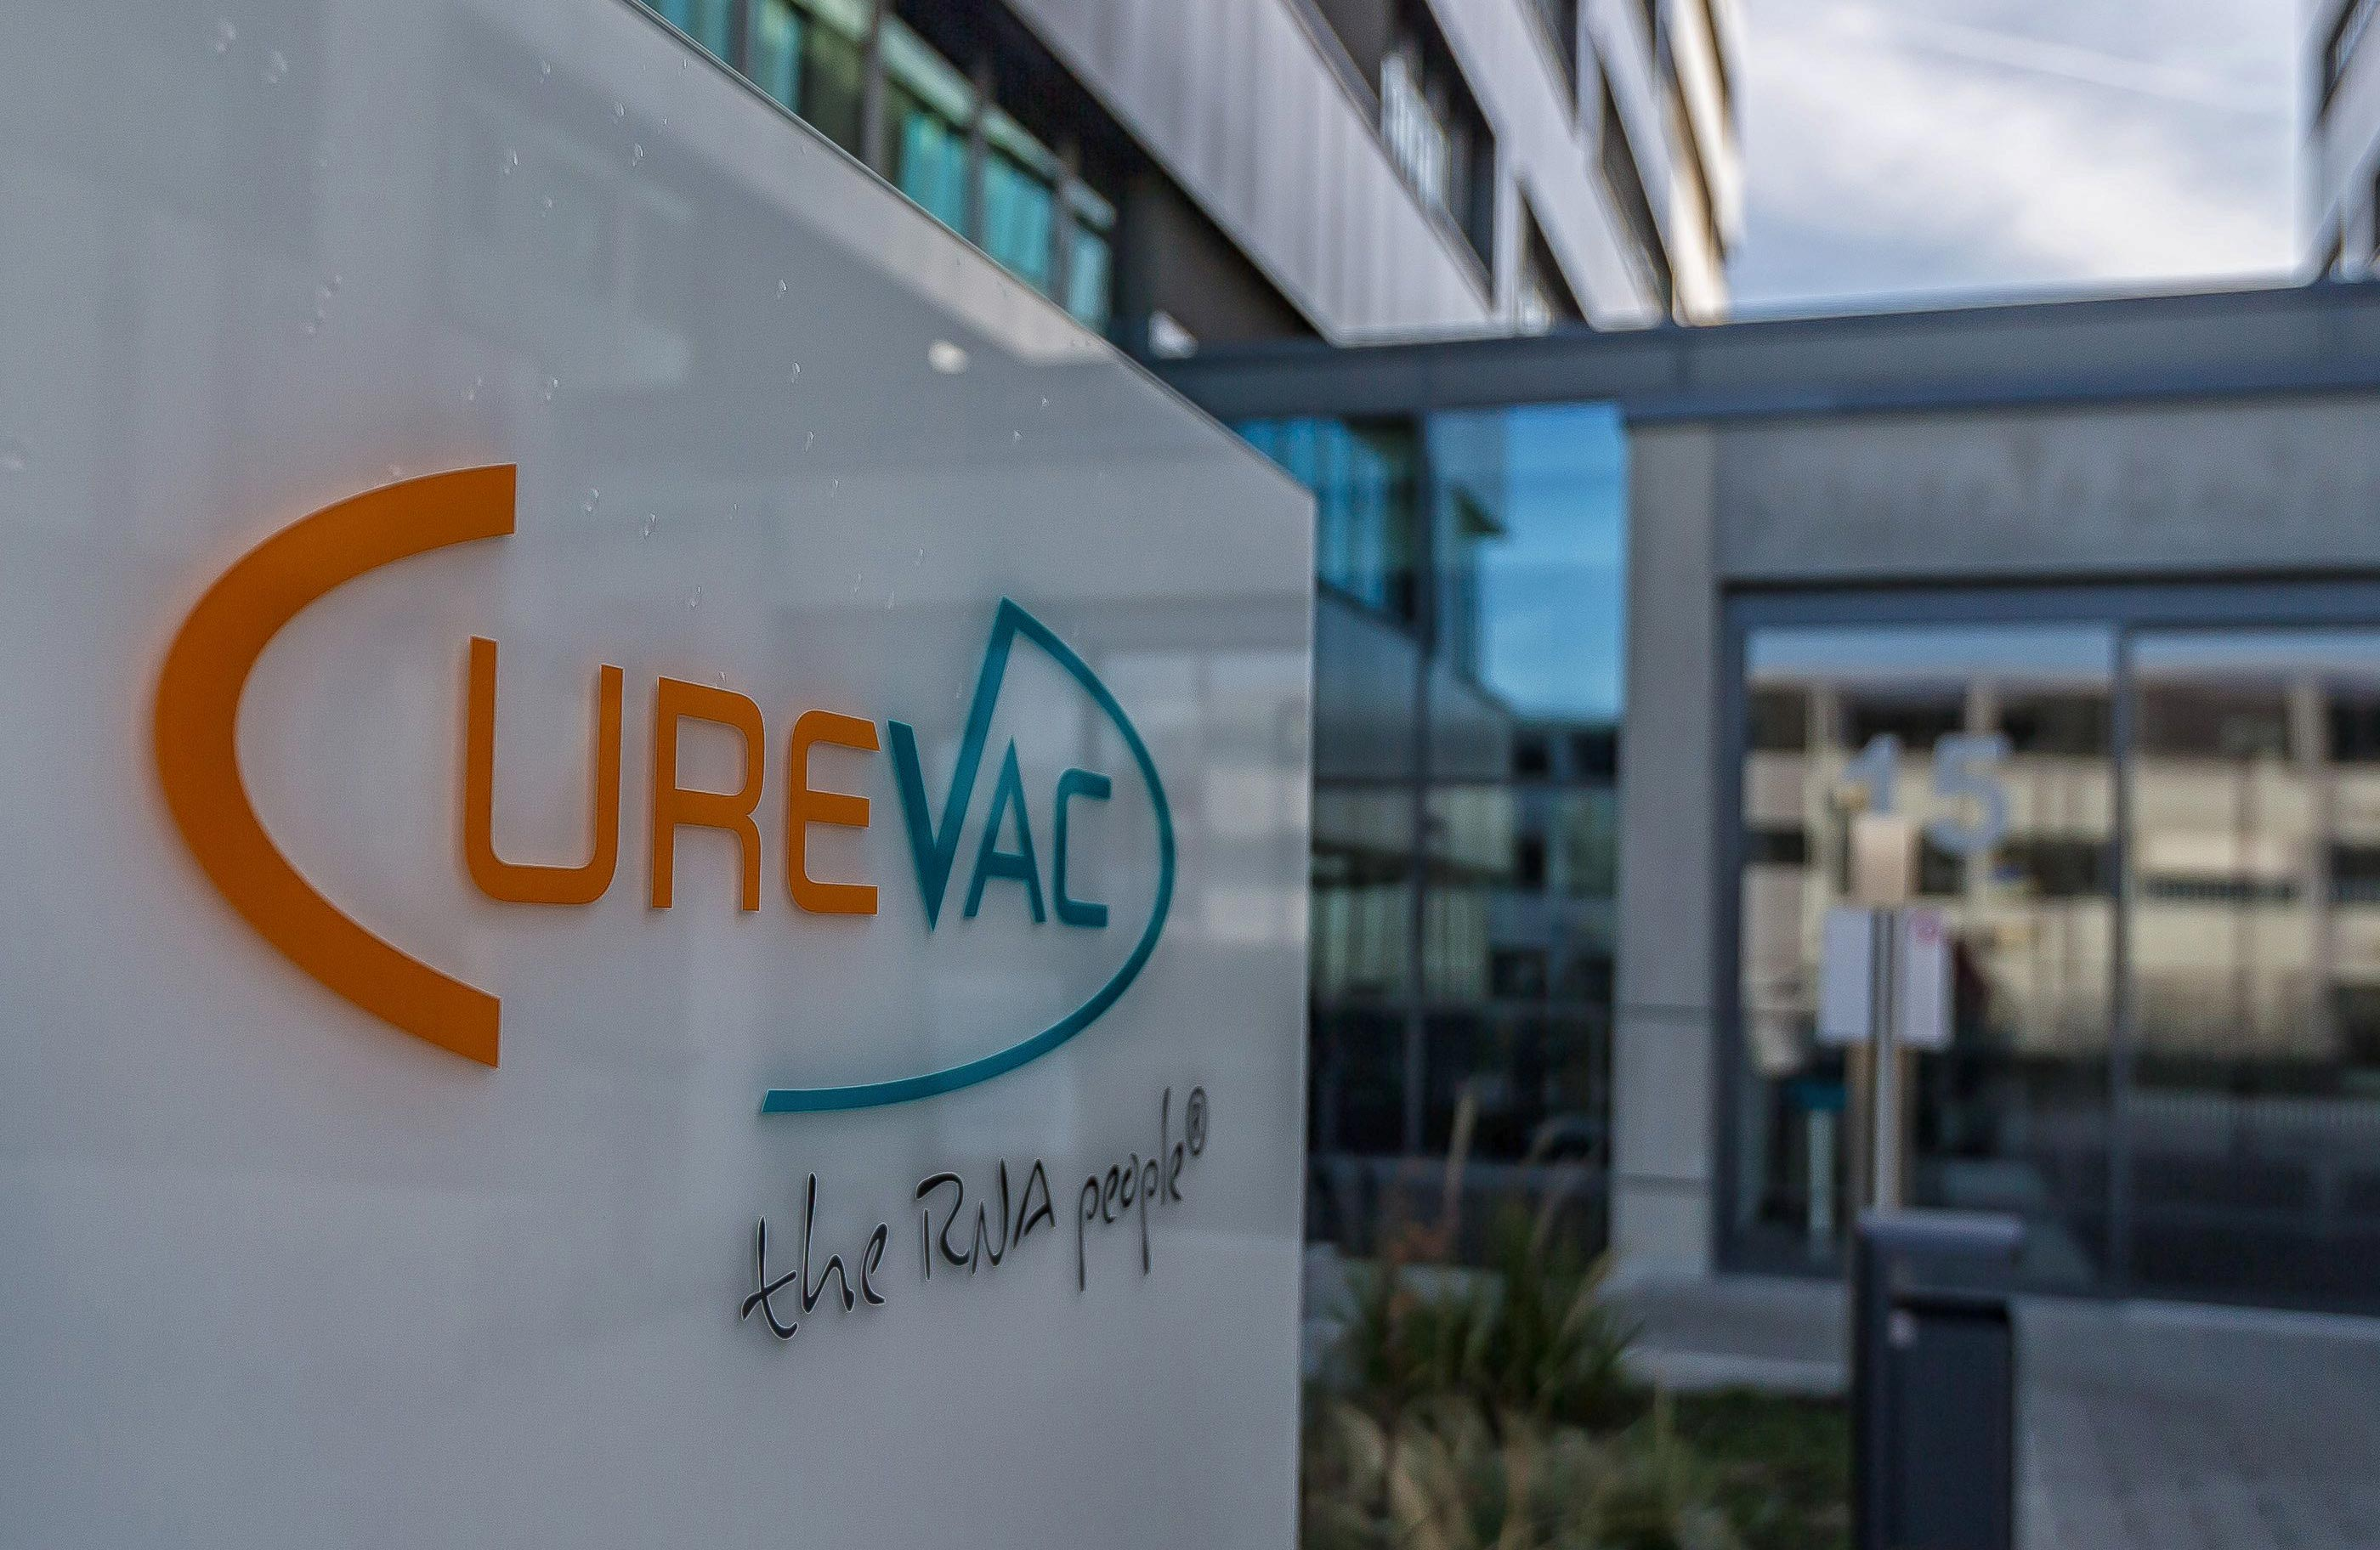 The Logo of Curevac is seen on a sign in front of the CUREVAC building on November 21 in Tuebingen, Germany.